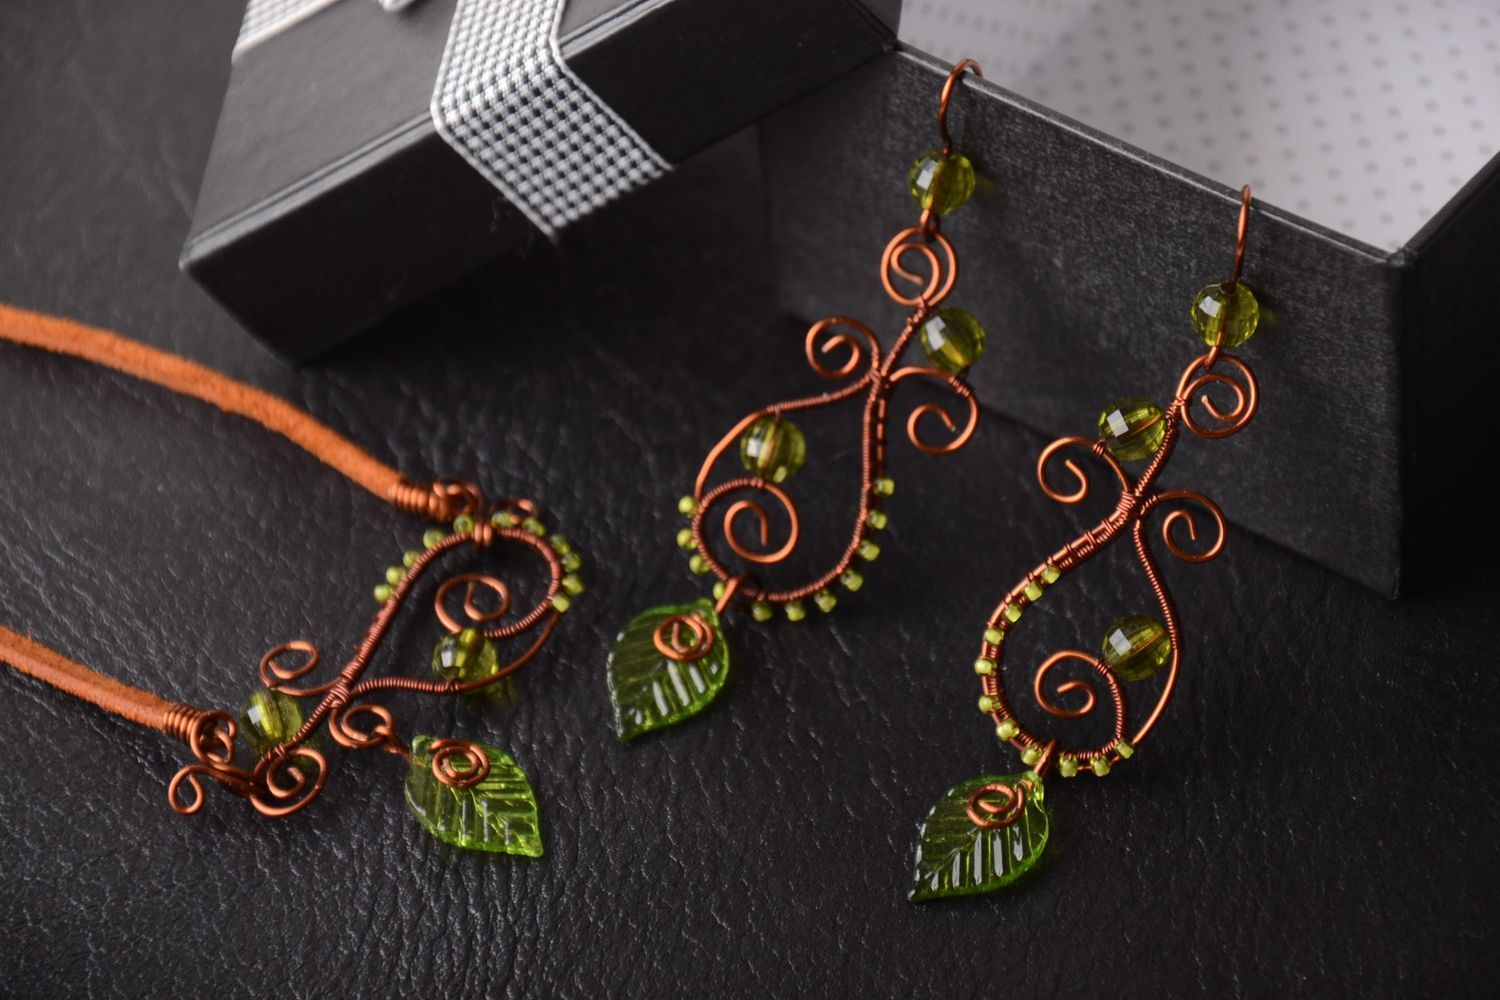 Handmade jewelry set of 2 items copper accessories for women gift ideas photo 1